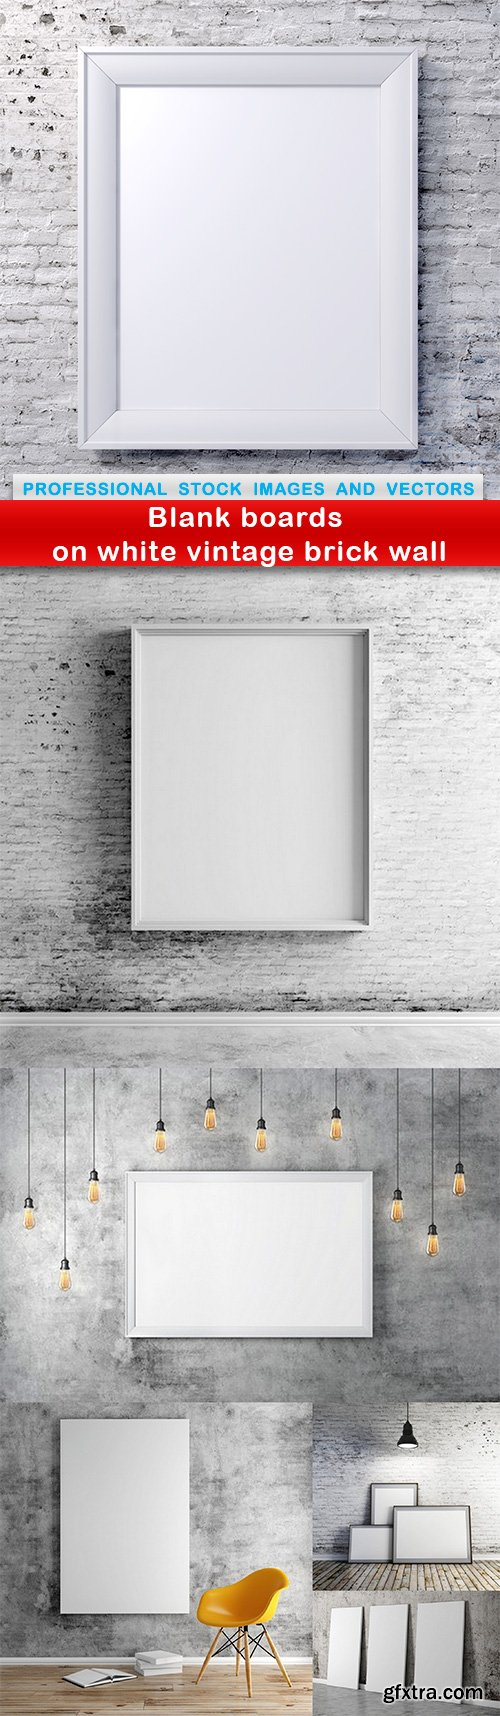 Blank boards on white vintage brick wall - 6 UHQ JPEG